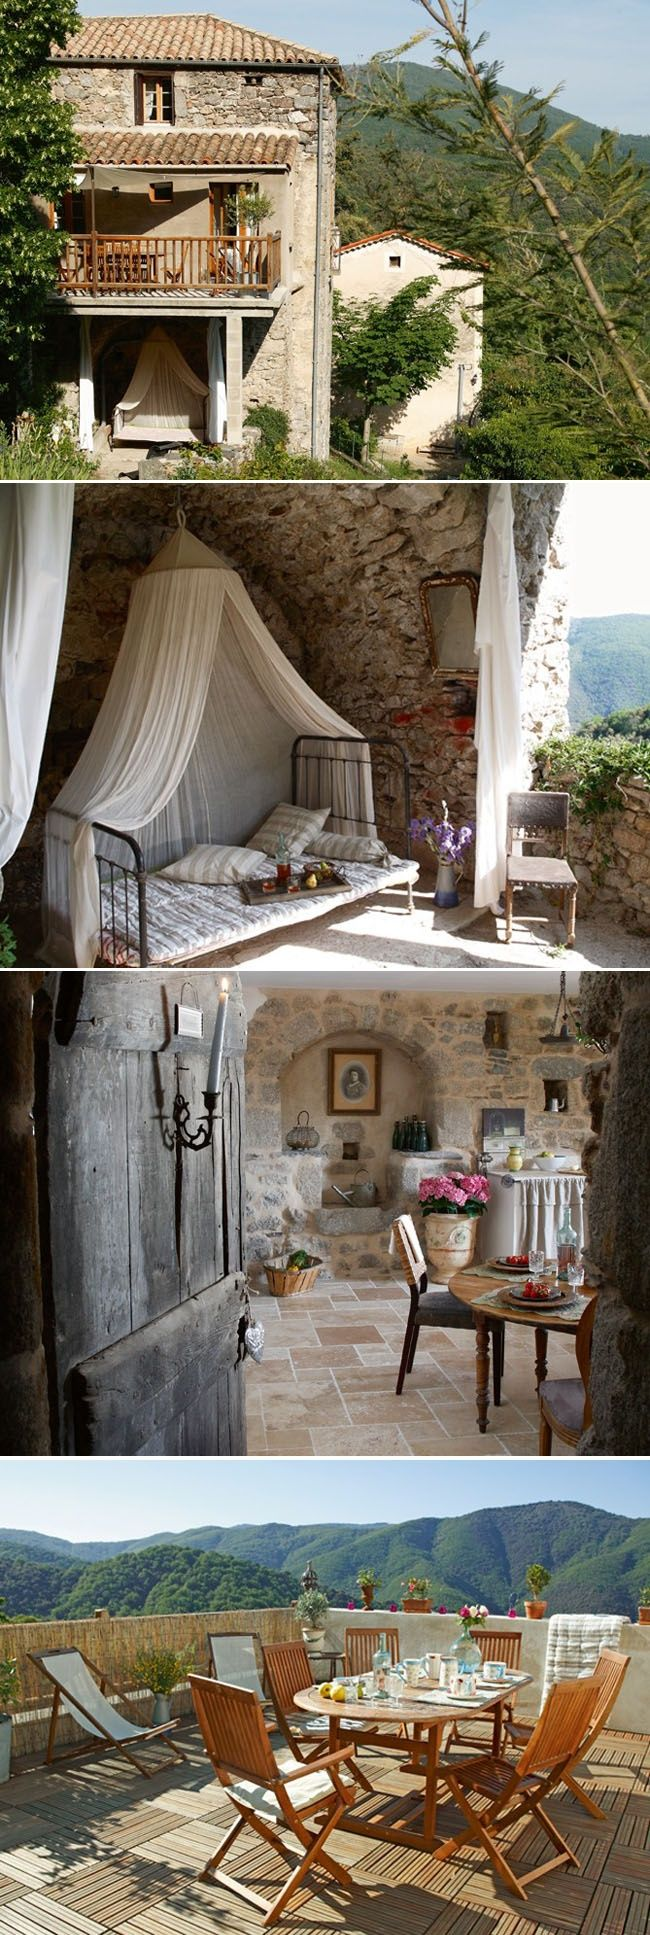 France Travel Inspiration - Farmhouse in Montpellier, south of France. Nestled in the lush Cevennes Mountain range, this charming place has been cared for by the same family for five generations.